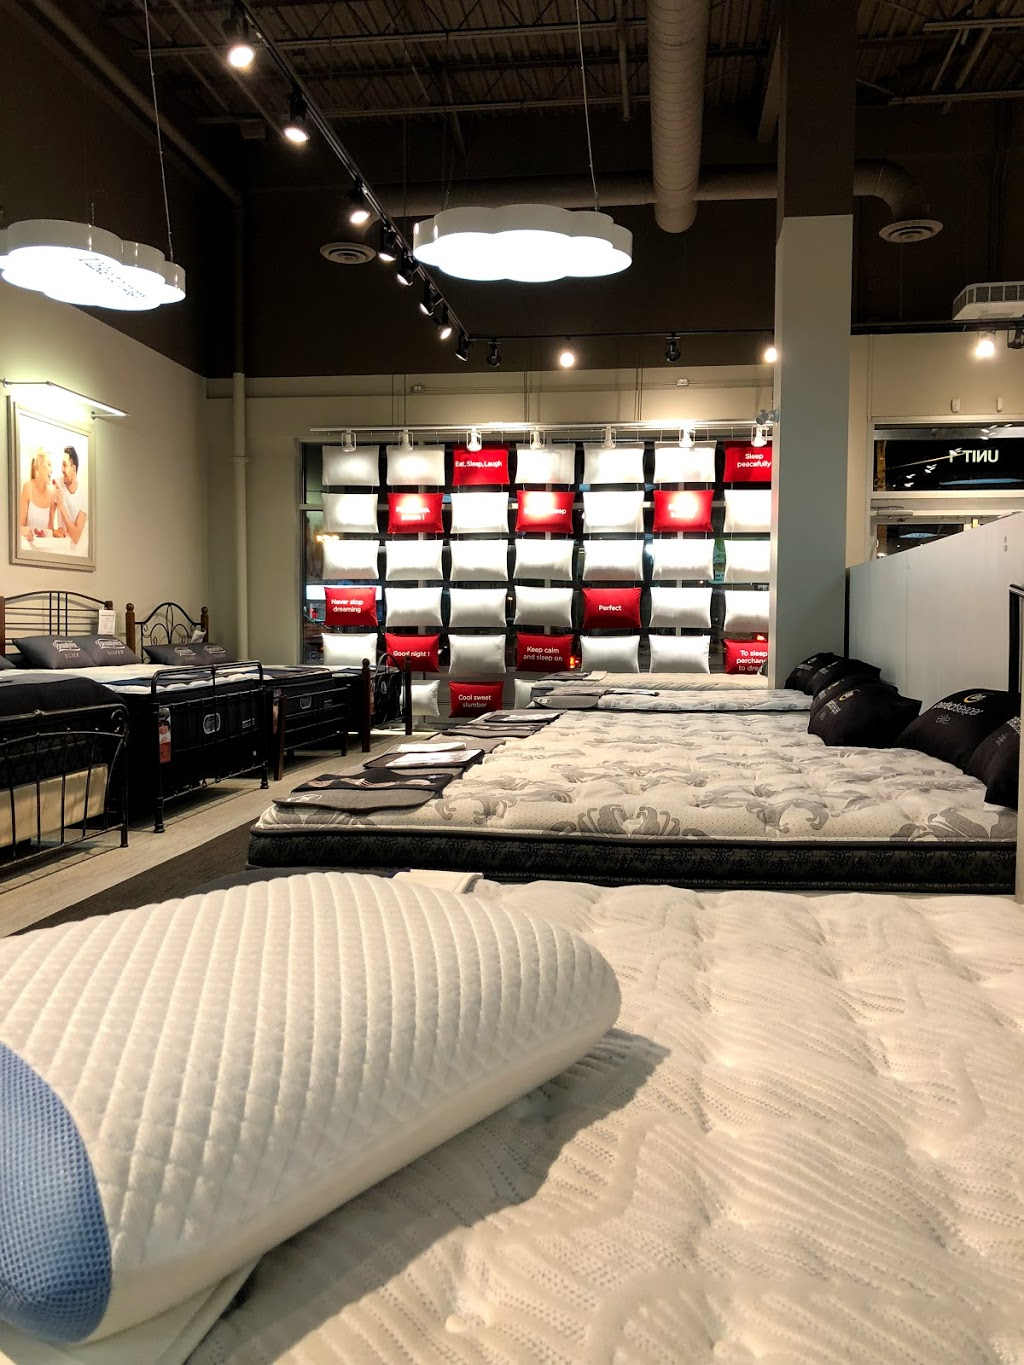 Sleep Country | furniture store | 1278 The Queensway, Etobicoke, ON M8Z 1S3, Canada | 4165032211 OR +1 416-503-2211